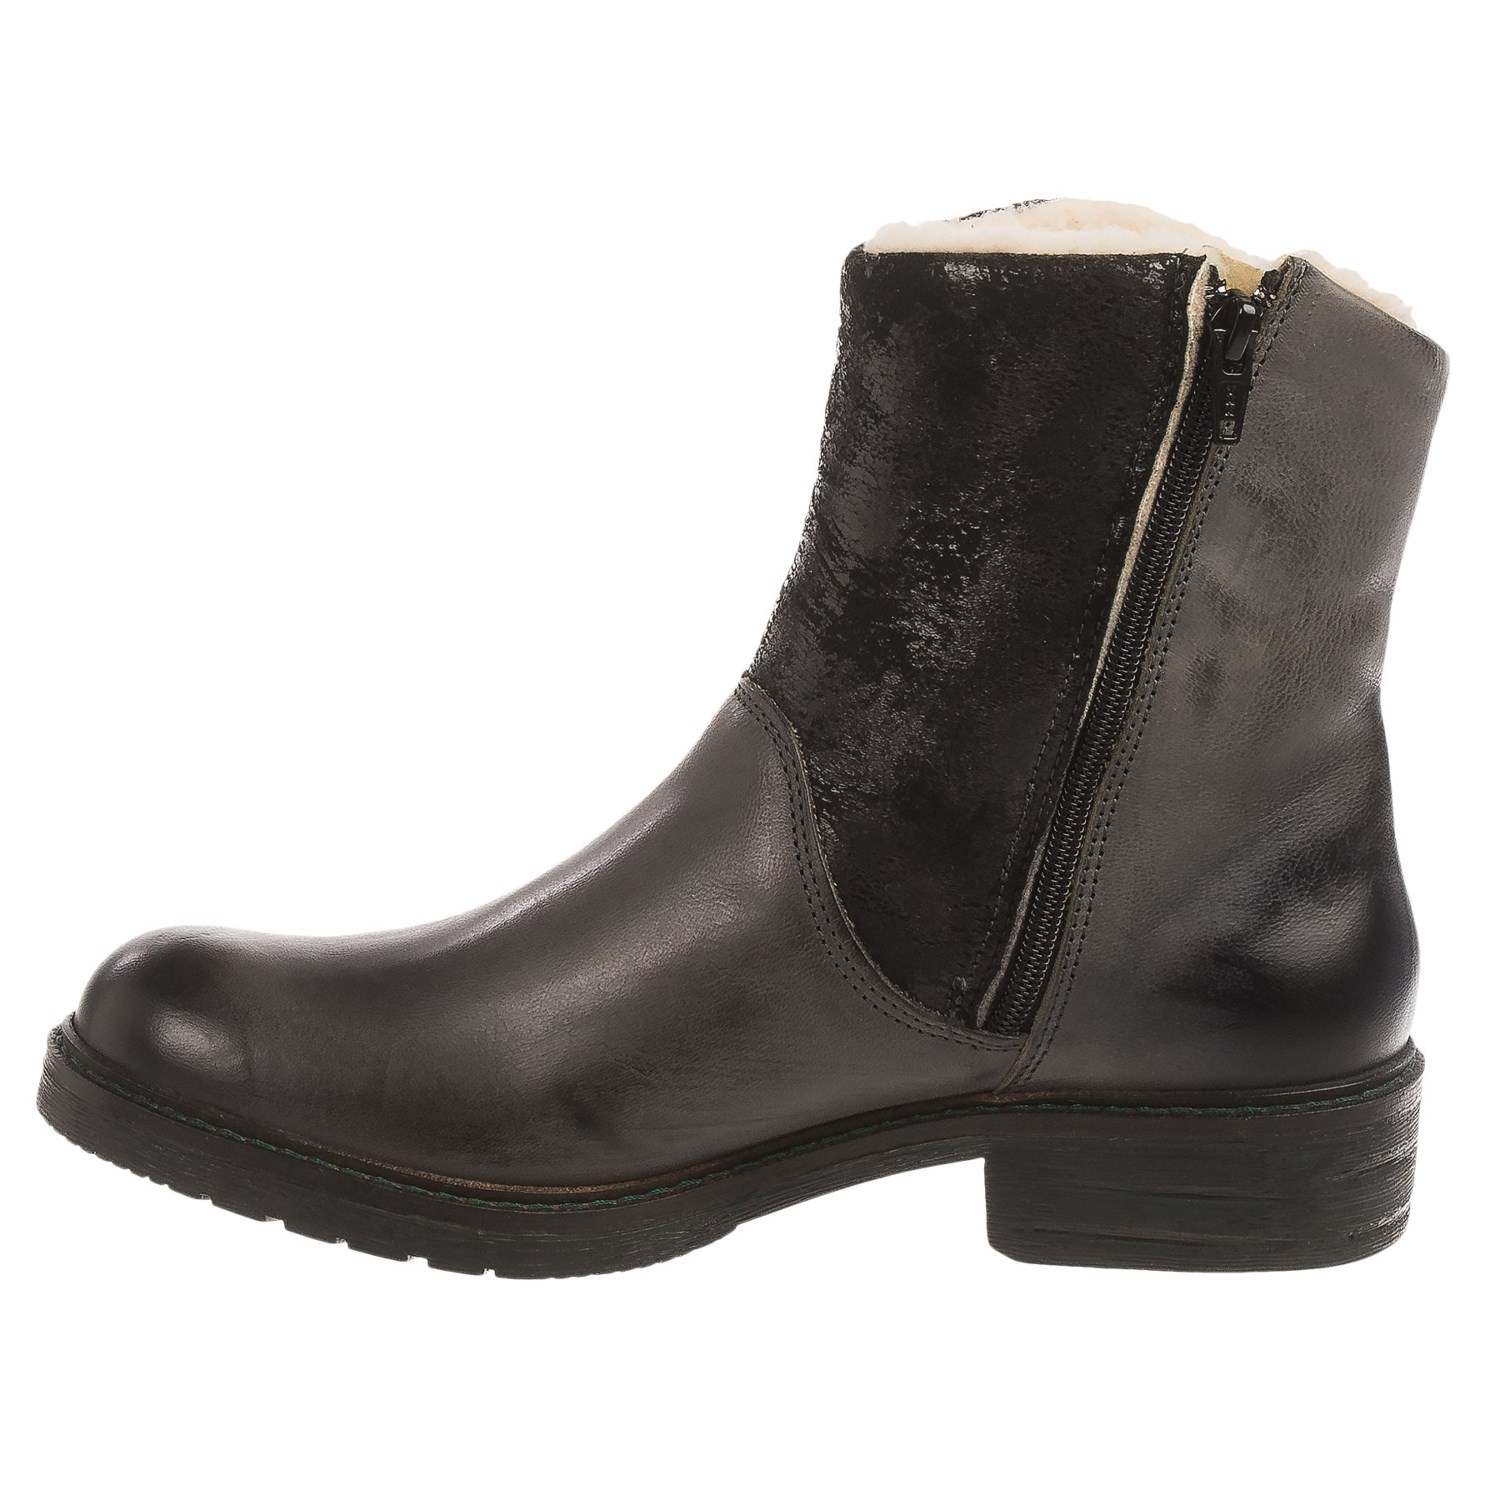 Eric Michael Maggie Ankle Boots (For Women) - Save 60%